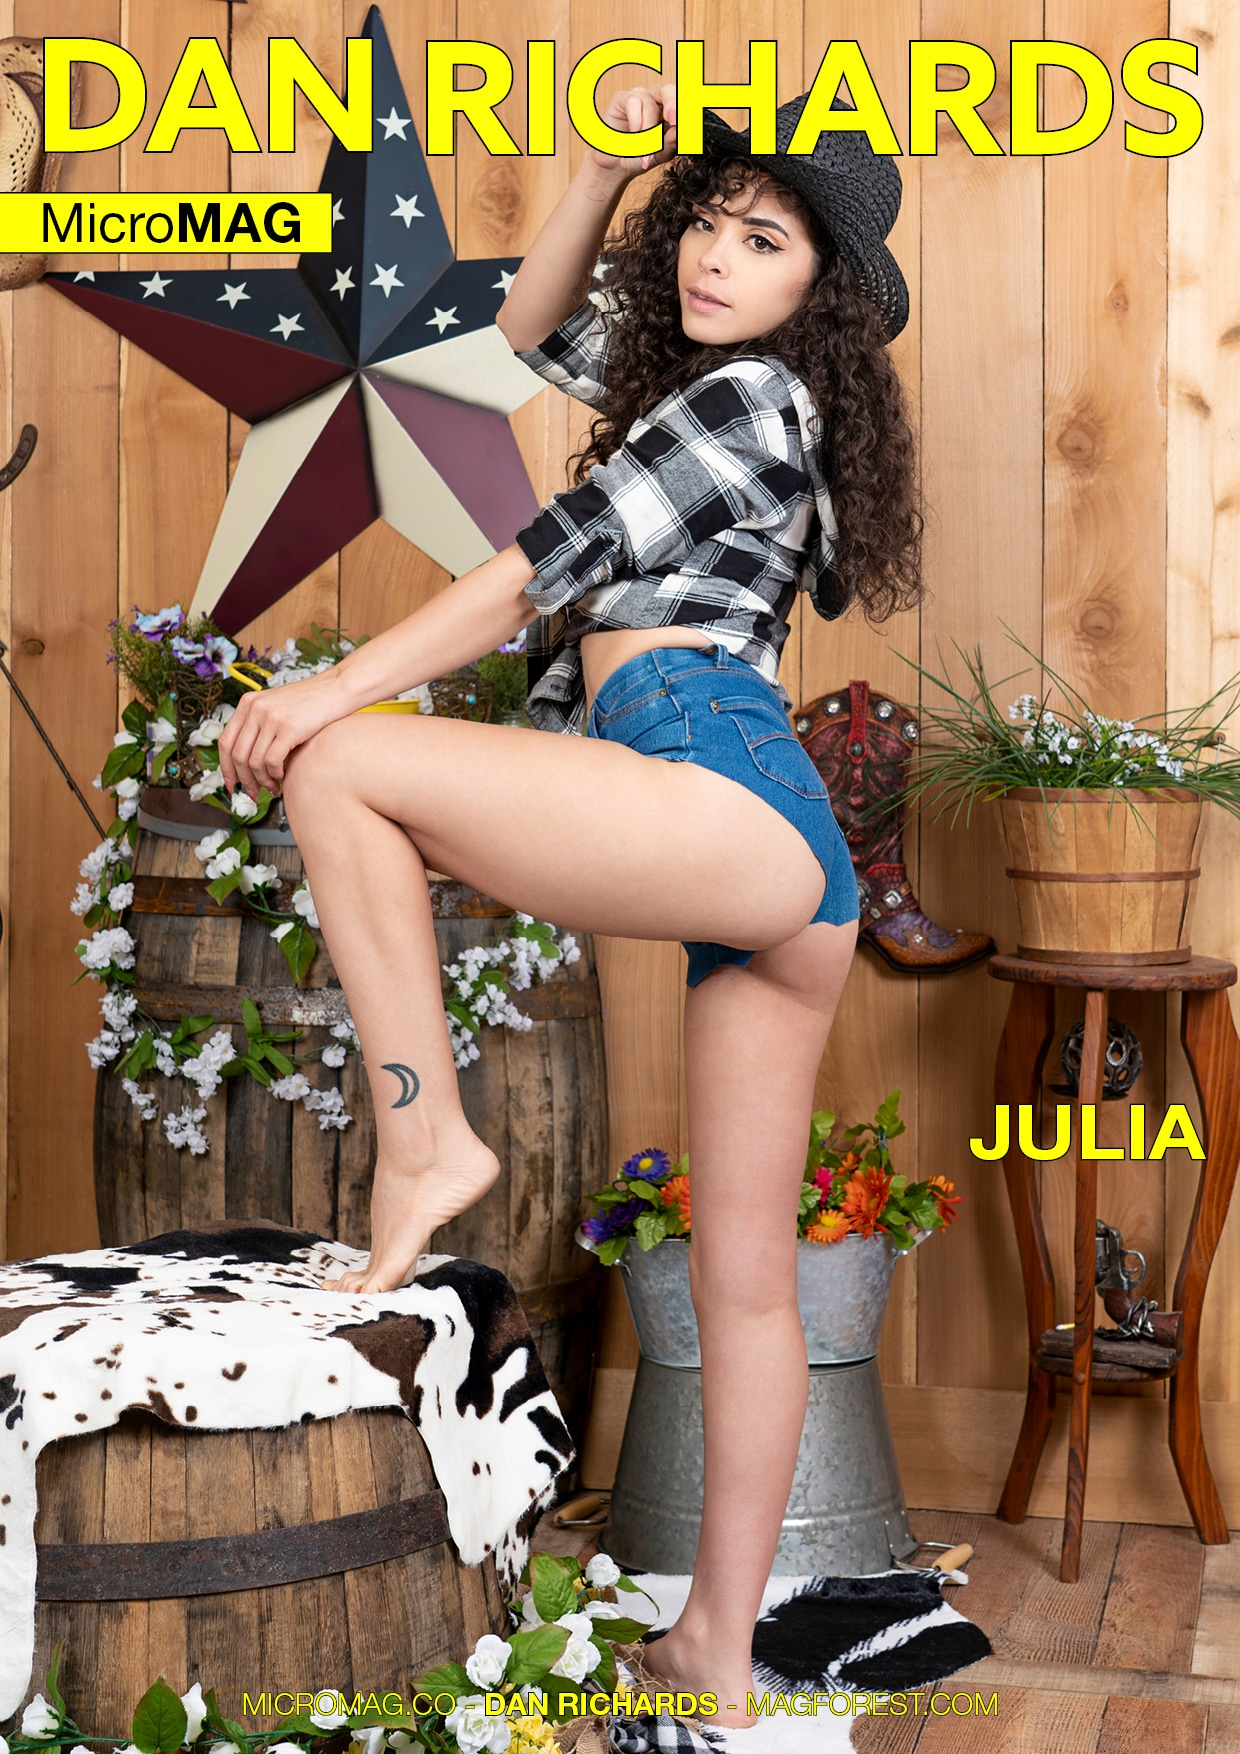 Dan Richards MicroMAG - Julia - Issue 2 1